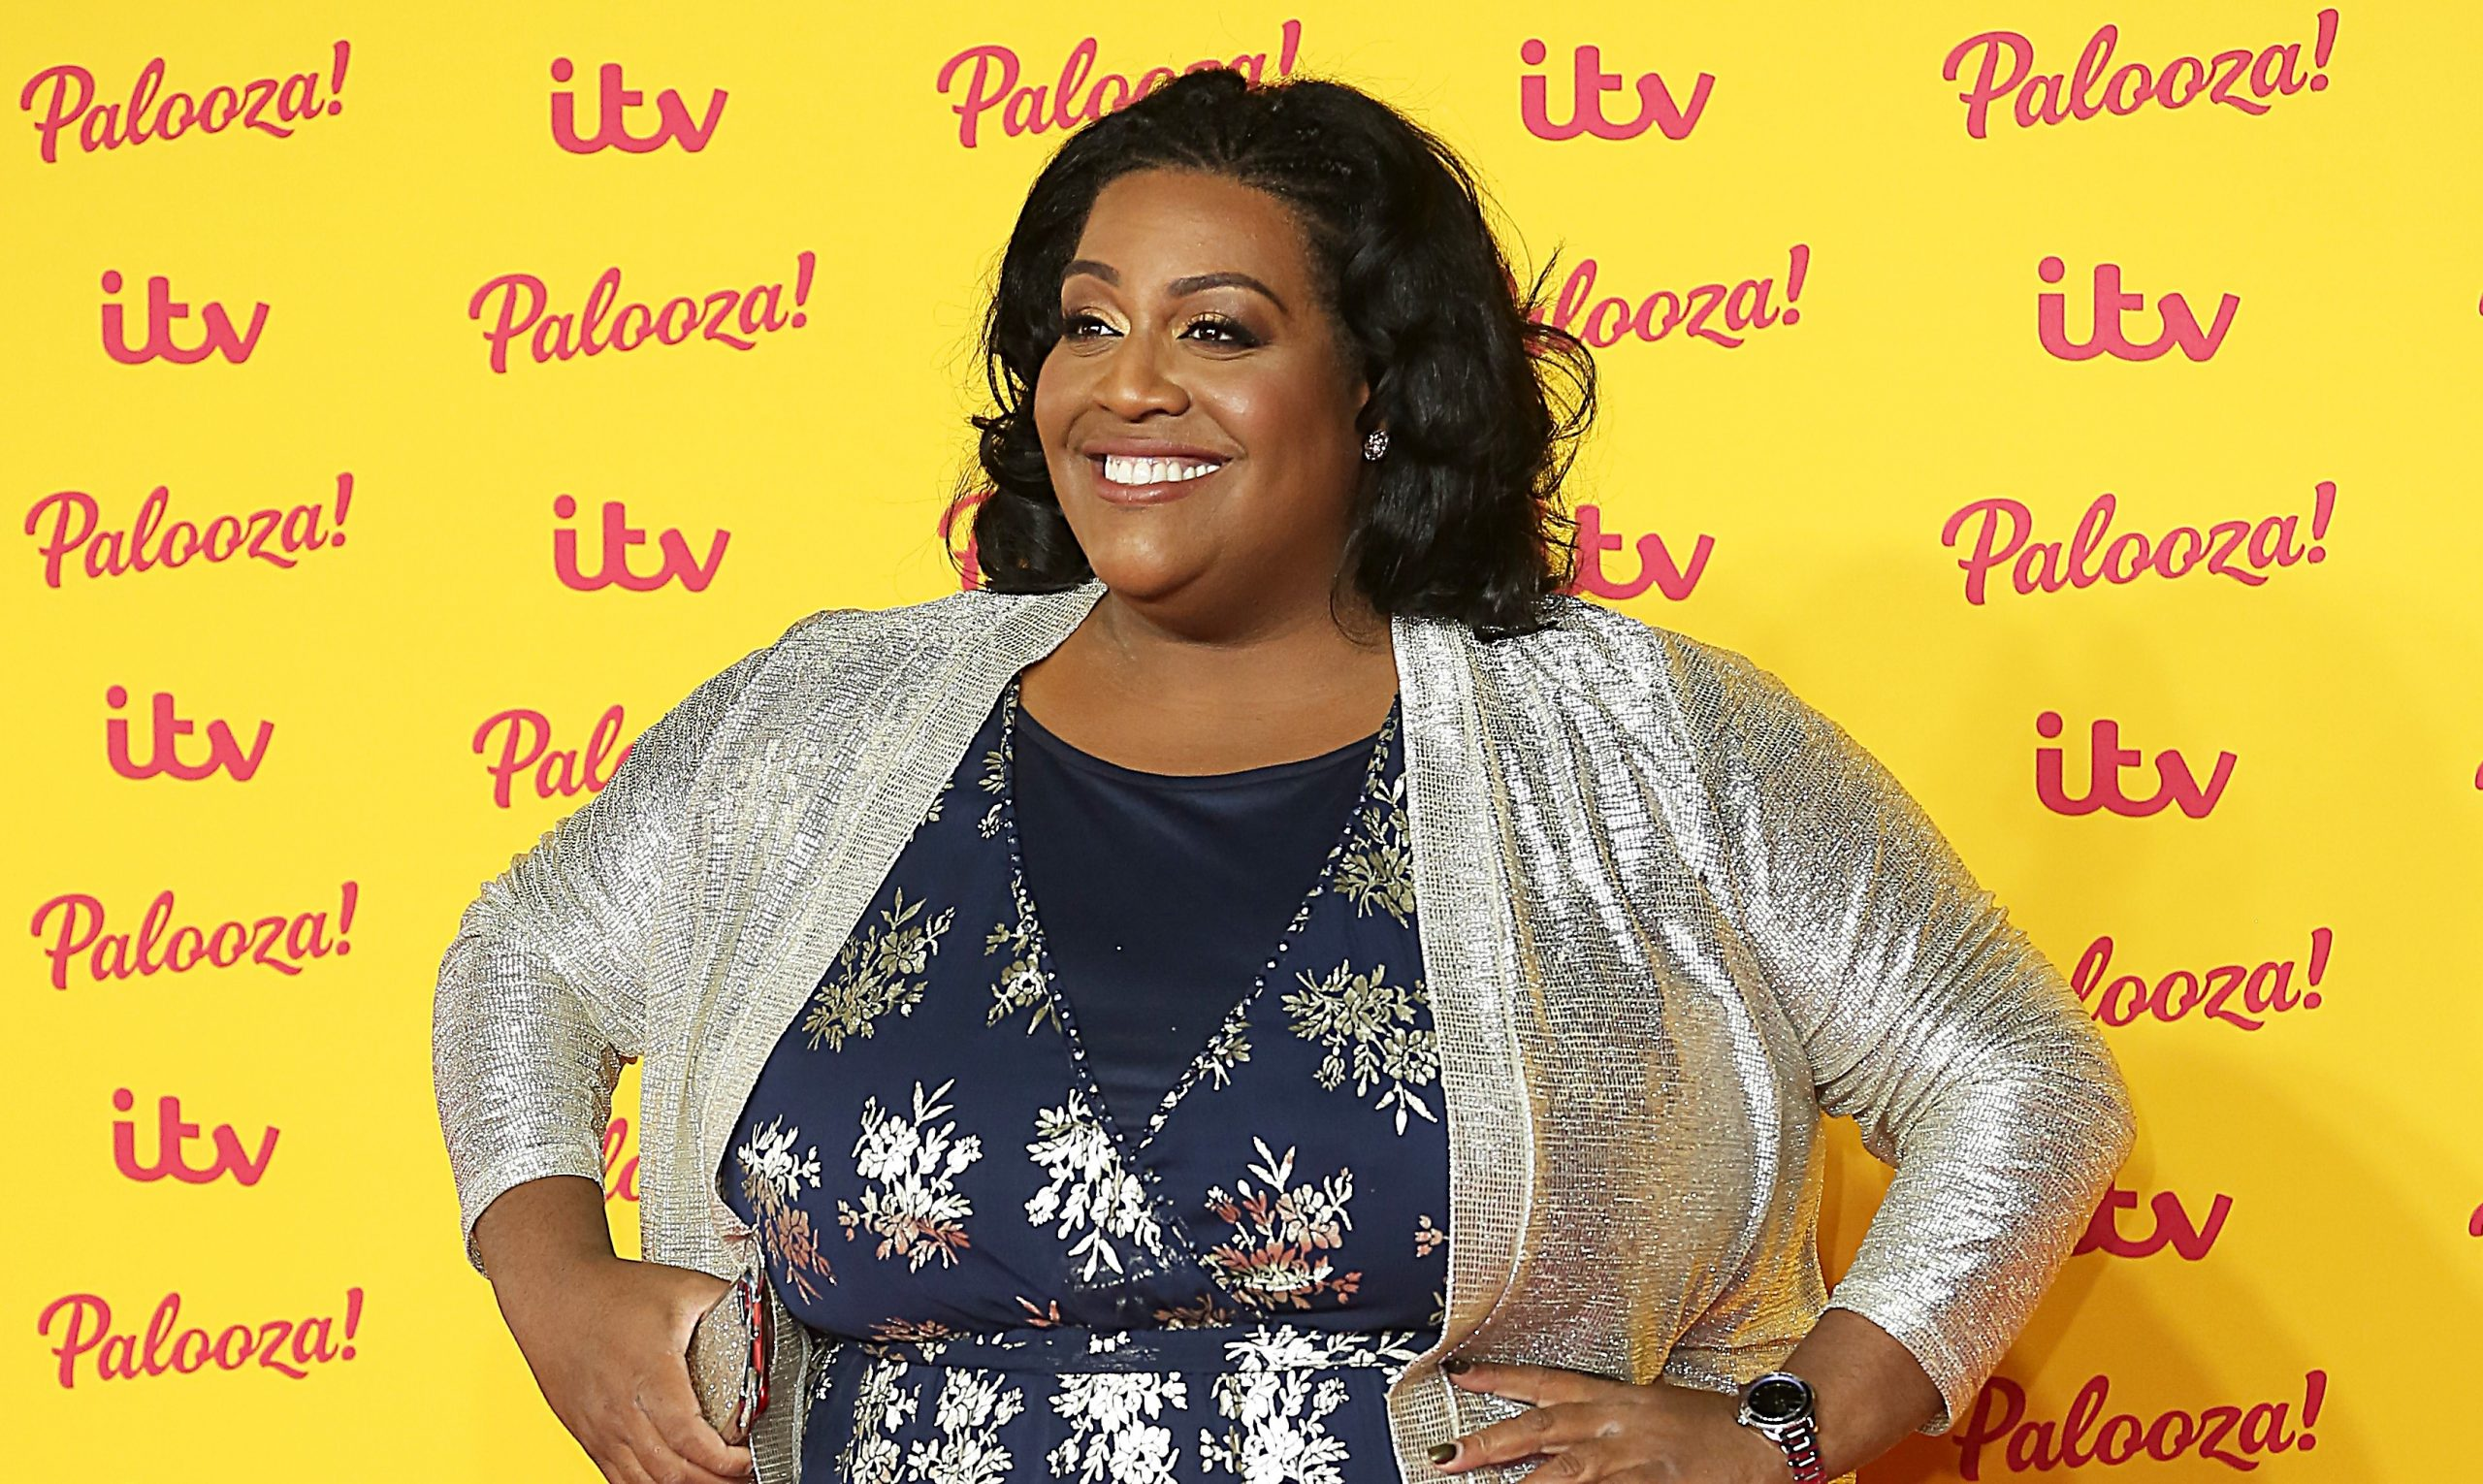 Bake Off fans call for Alison Hammond to be made a Dame